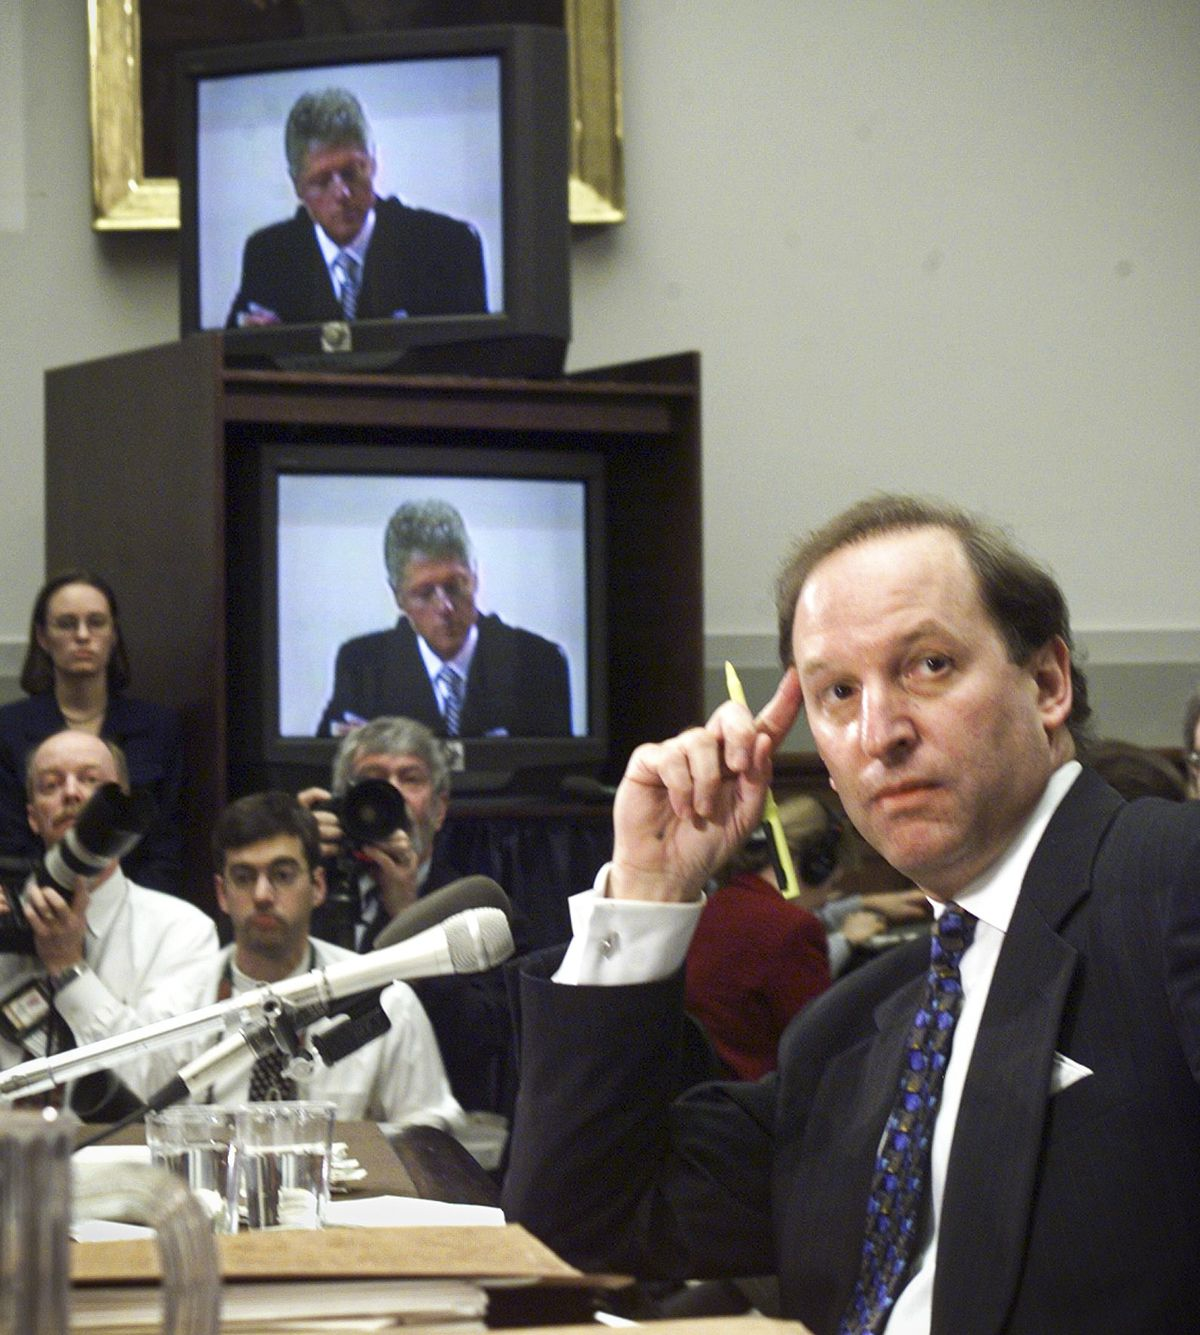 President Clinton's 1998 impeachment committee hearing with Clinton on a TV screen and Minority Chief Investigative Counsel Abbe Lowell watching him.